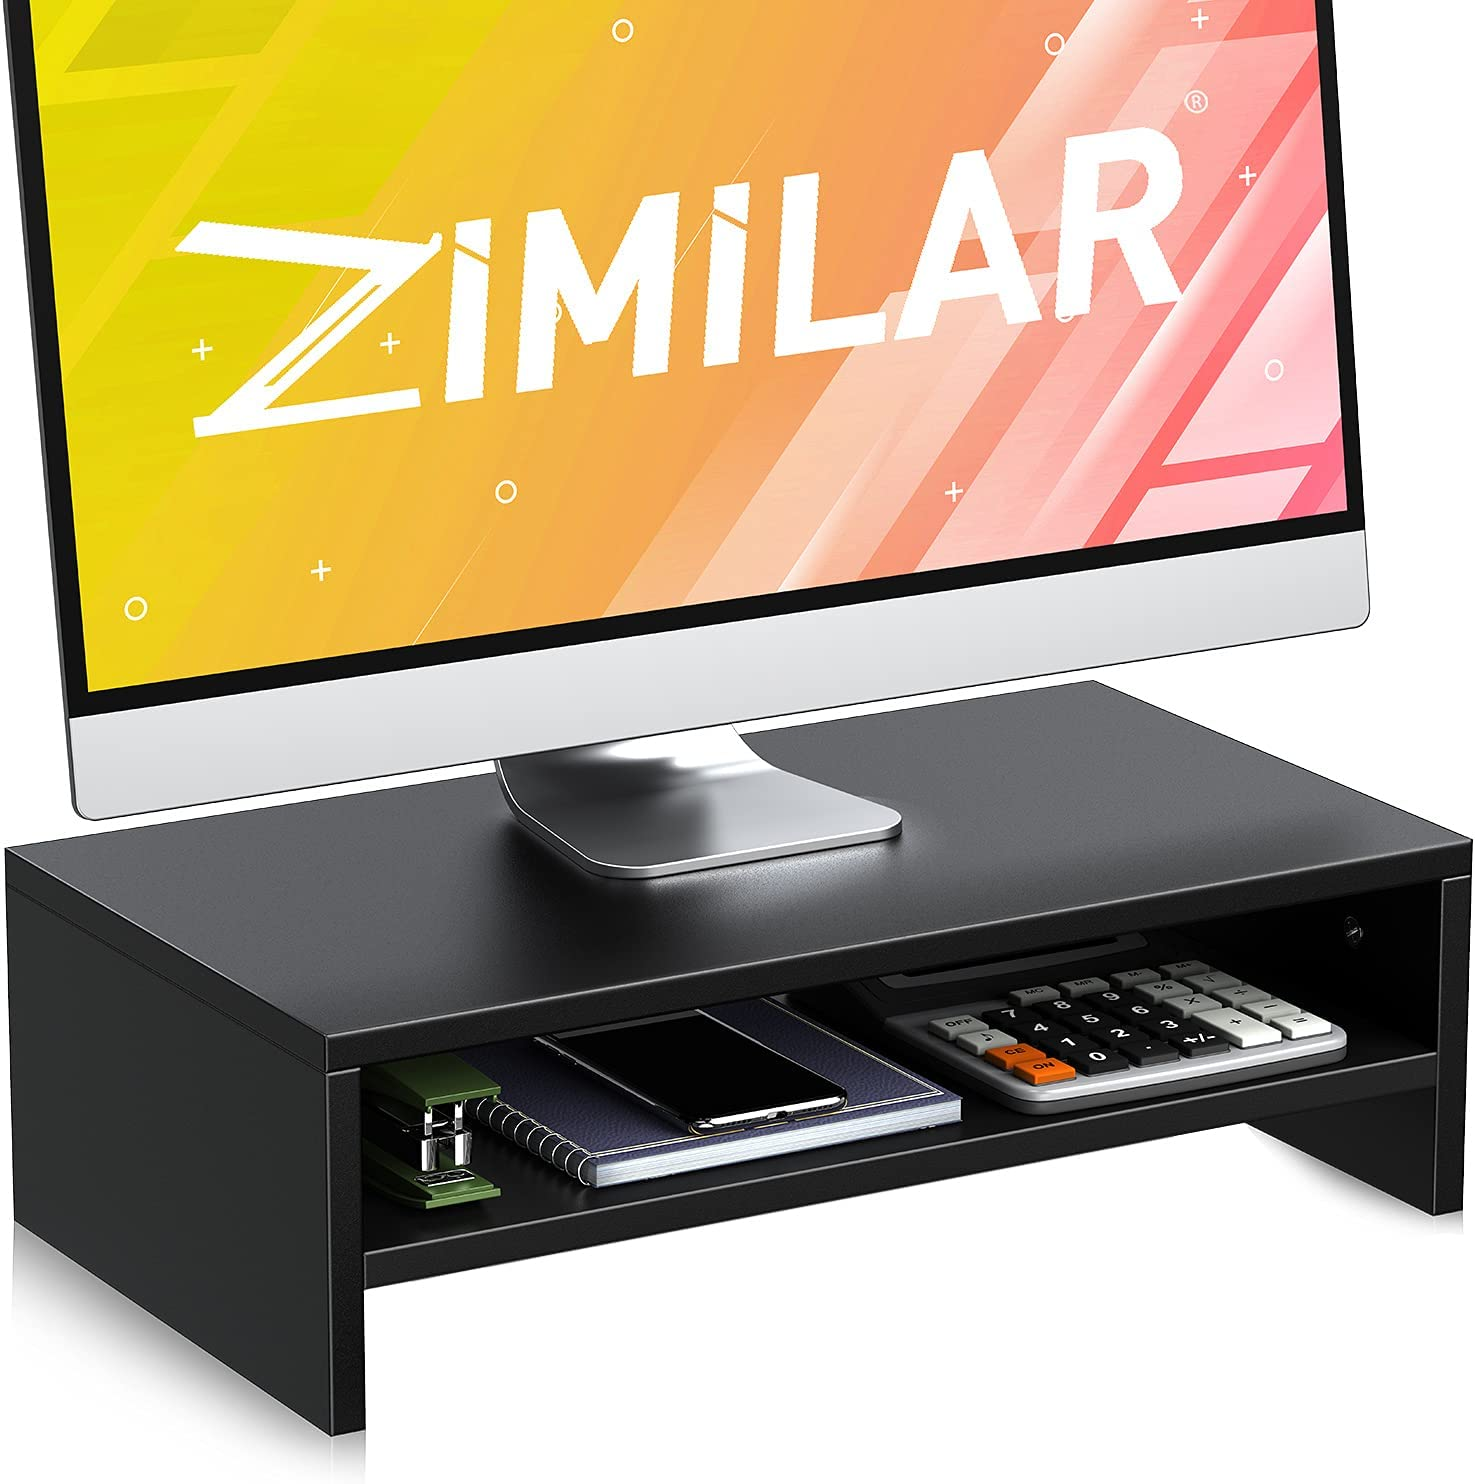 Zimilar 2 Tiers Monitor Stand Riser, Wood Monitor Riser with Storage Organizer, Monitor Stand for Screen, Laptop, Desktop, Printer, Premium Computer Stand Riser for Home & Office Desk